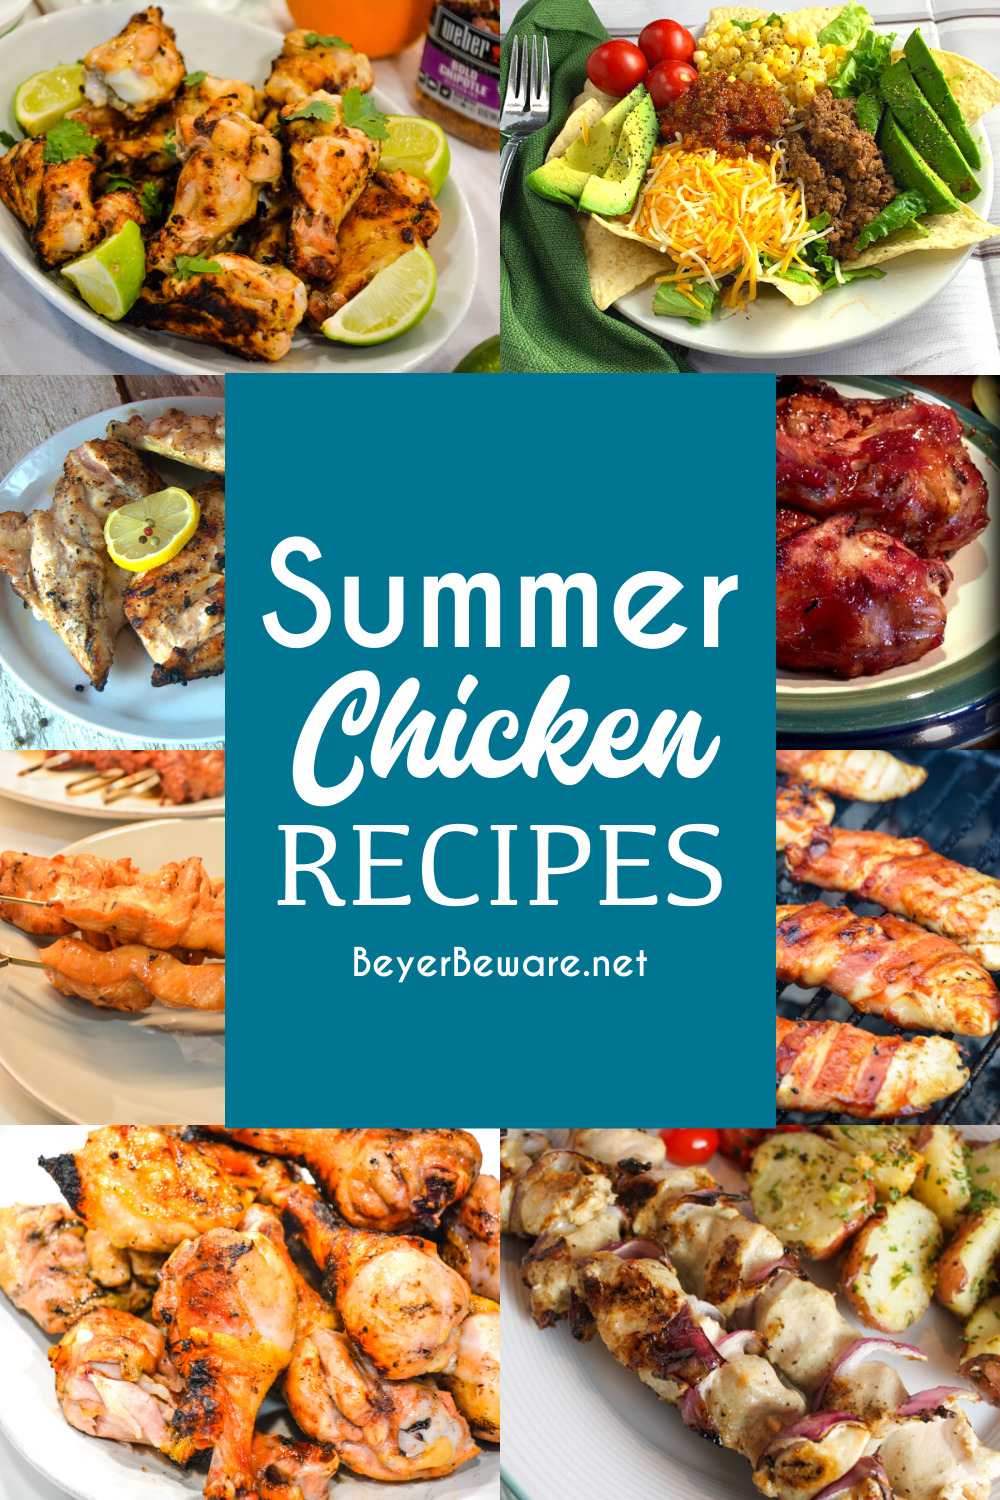 Summer Chicken Recipes